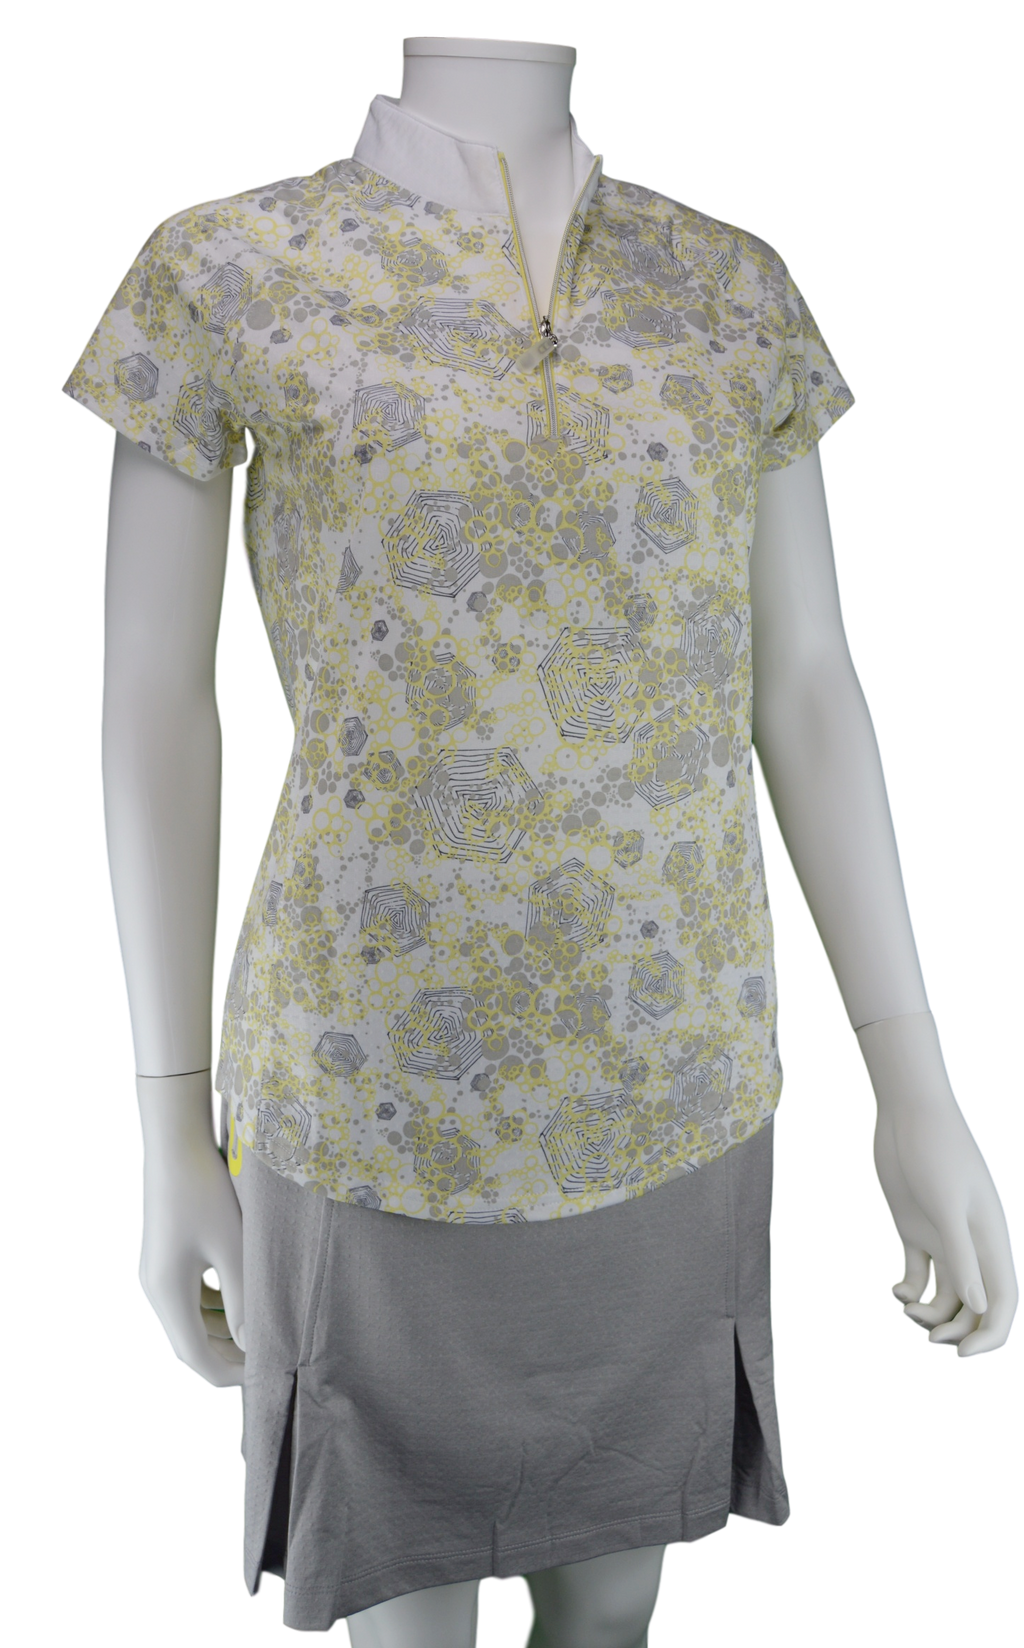 Bette & Court Celeste Short Sleeve Print Polo | SPF 50